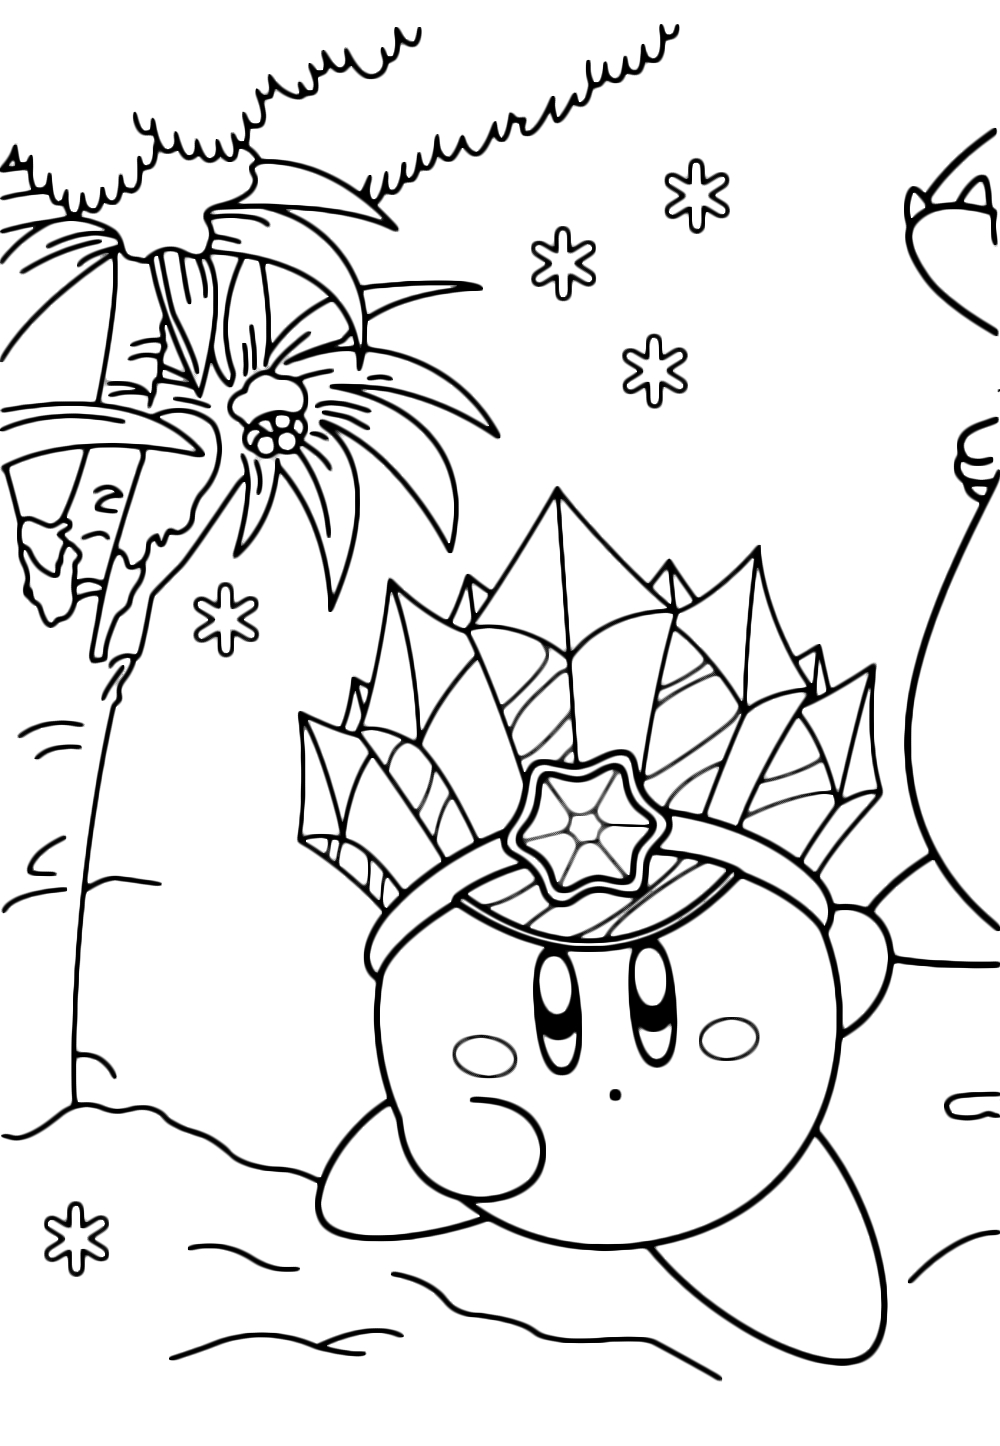 super mario brothers coloring pages - kirby ghiaccio corre